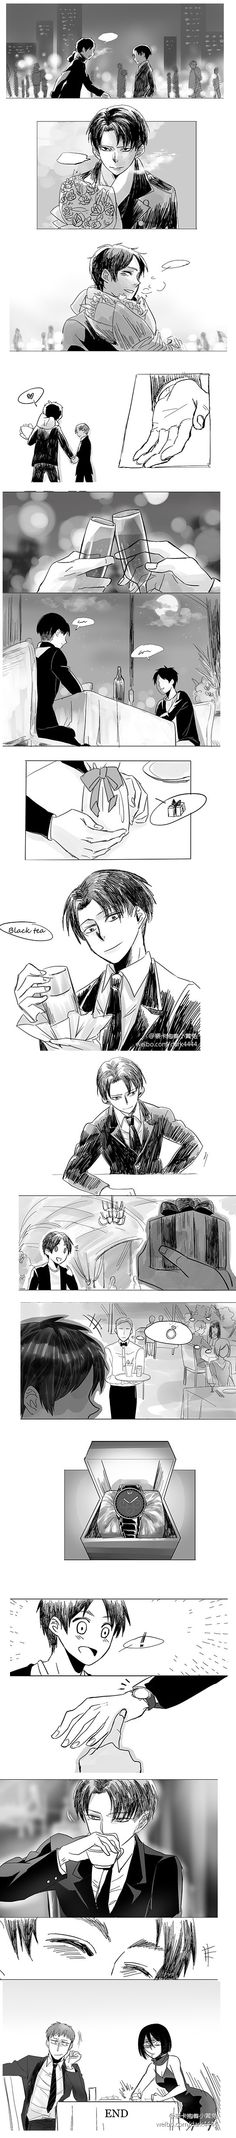 Seriously Levi no ring come the fuck on. oh I bet after tonight there will be a rig trust me with there sex there's gonna be a ring trust me Mikasa, Armin, Eren E Levi, Ereri, Attack On Titan Comic, Attack On Titan Ships, Titans Anime, My Emotions, Levi Ackerman